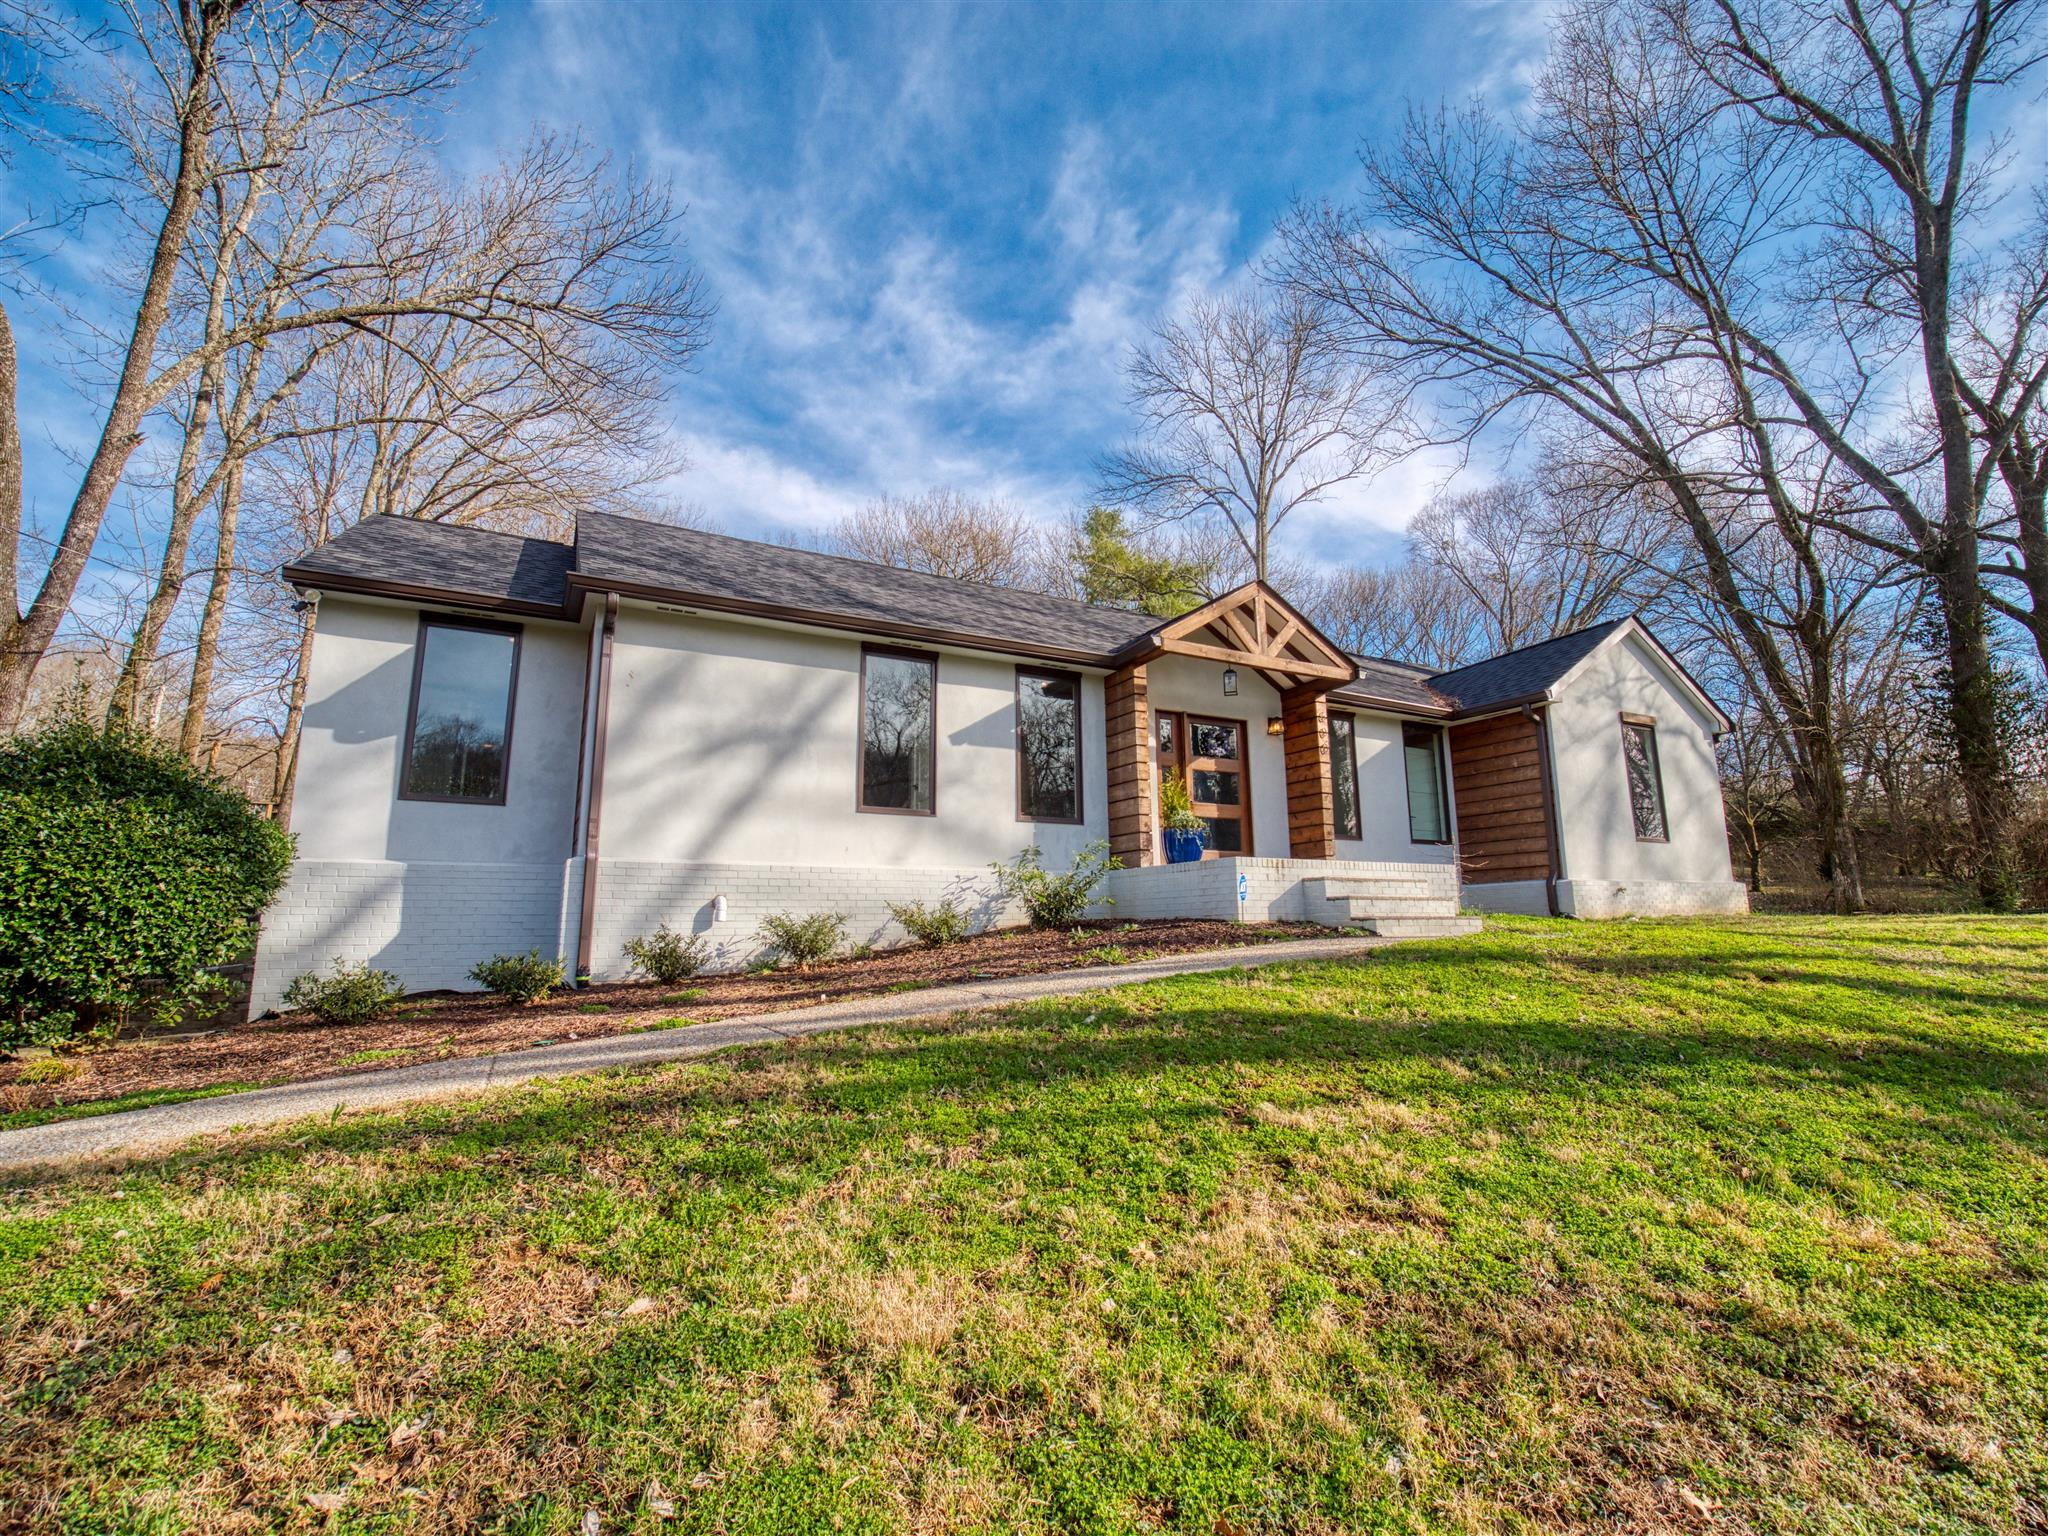 600 Lynnwood Blvd, Belle Meade in Davidson County County, TN 37205 Home for Sale